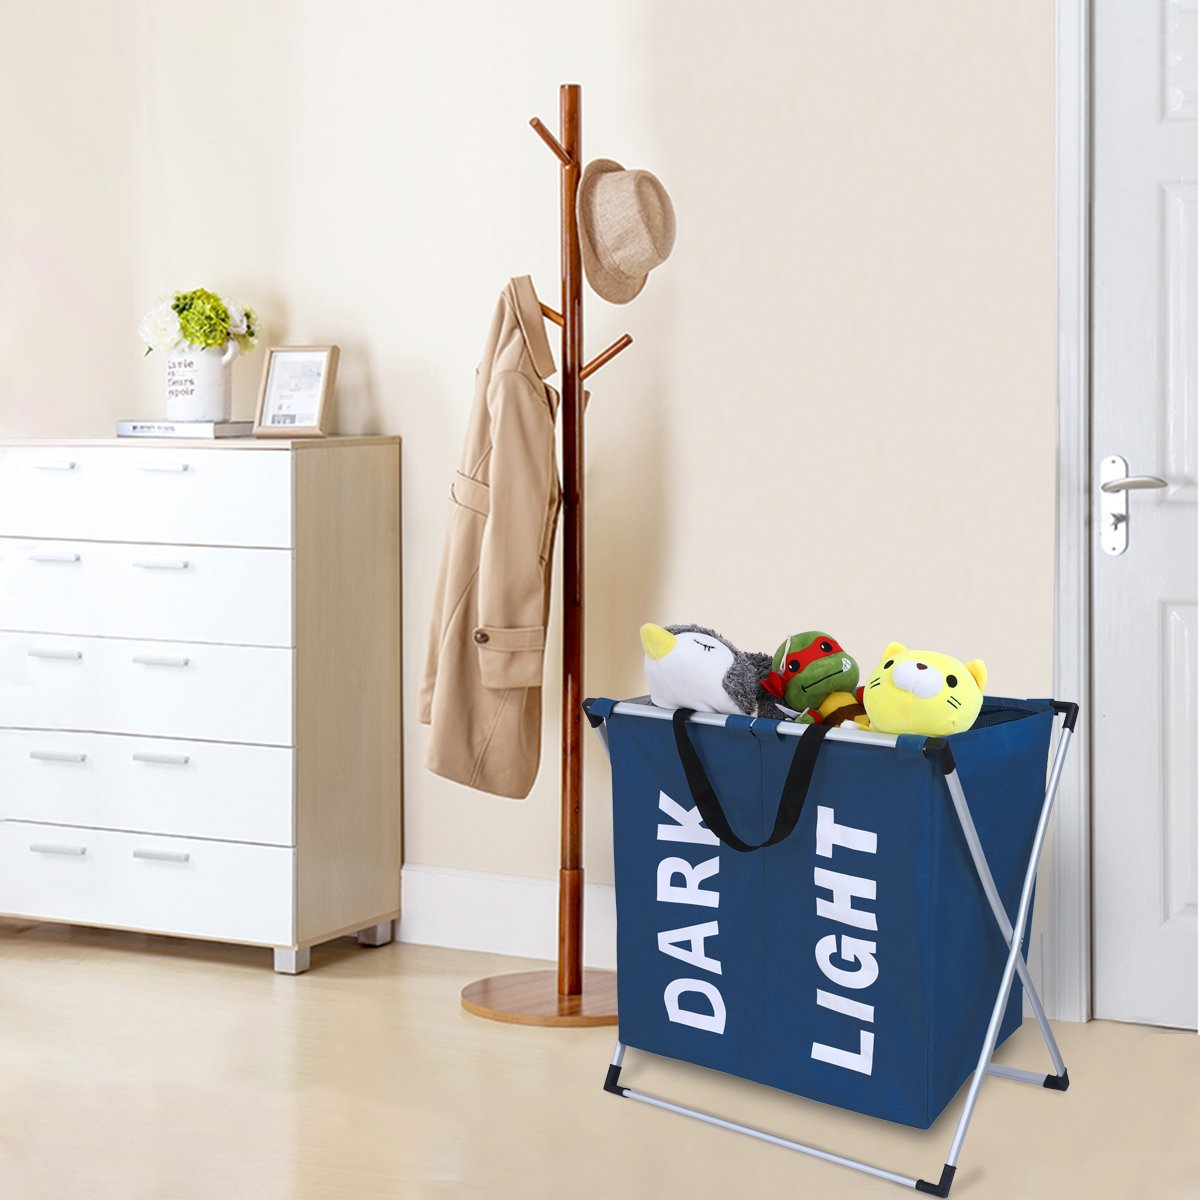 Chrislley X-frame Laundry Hamper Basket Dirty Clothes Laundry Basket Large Home Laundry Hamper Sorter Laundry Bag (Blue)